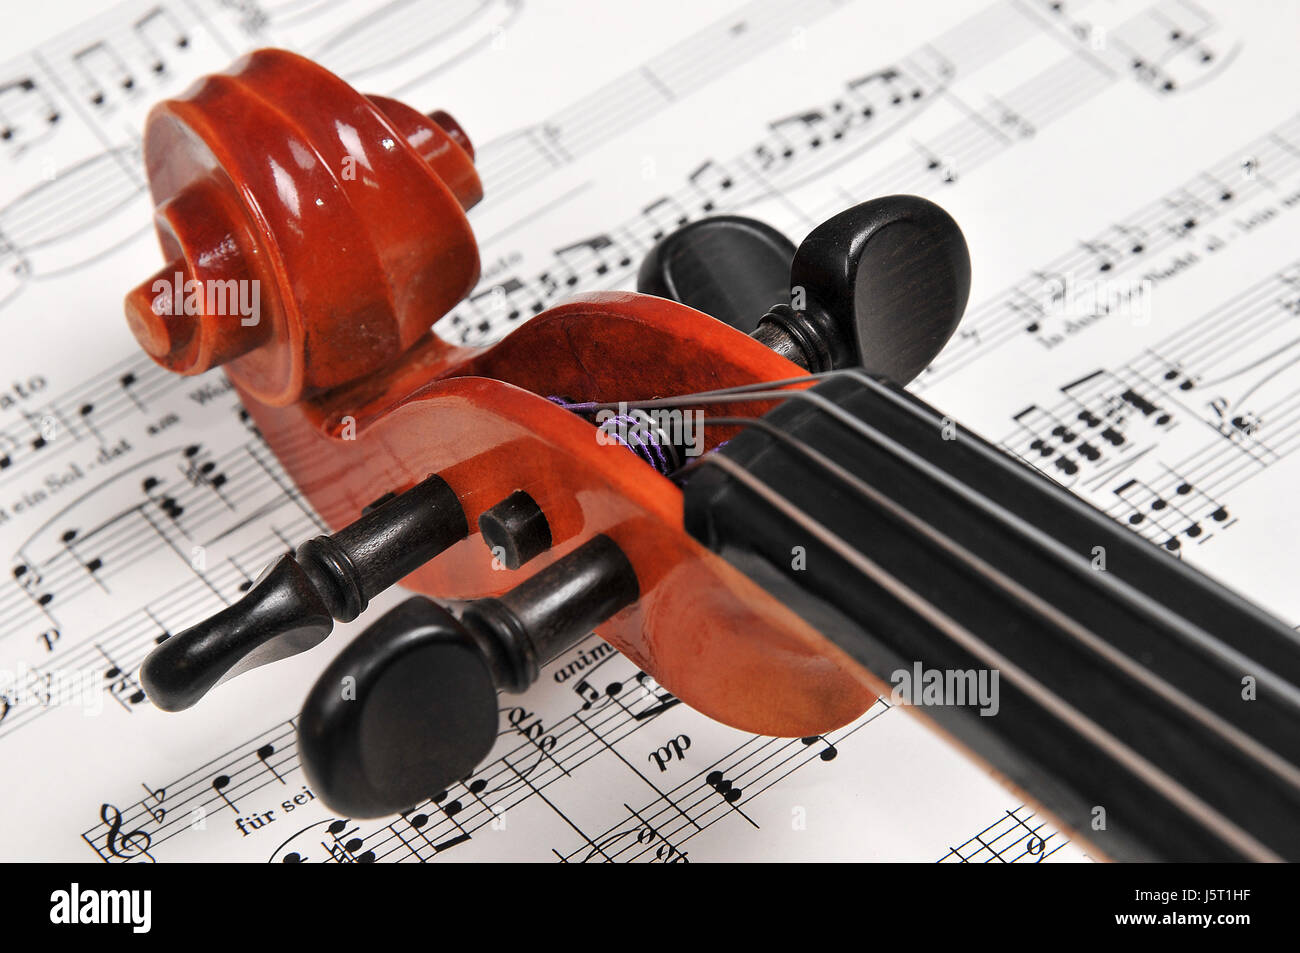 music musical instrument snail violin bowed instrument notes stringed - Stock Image